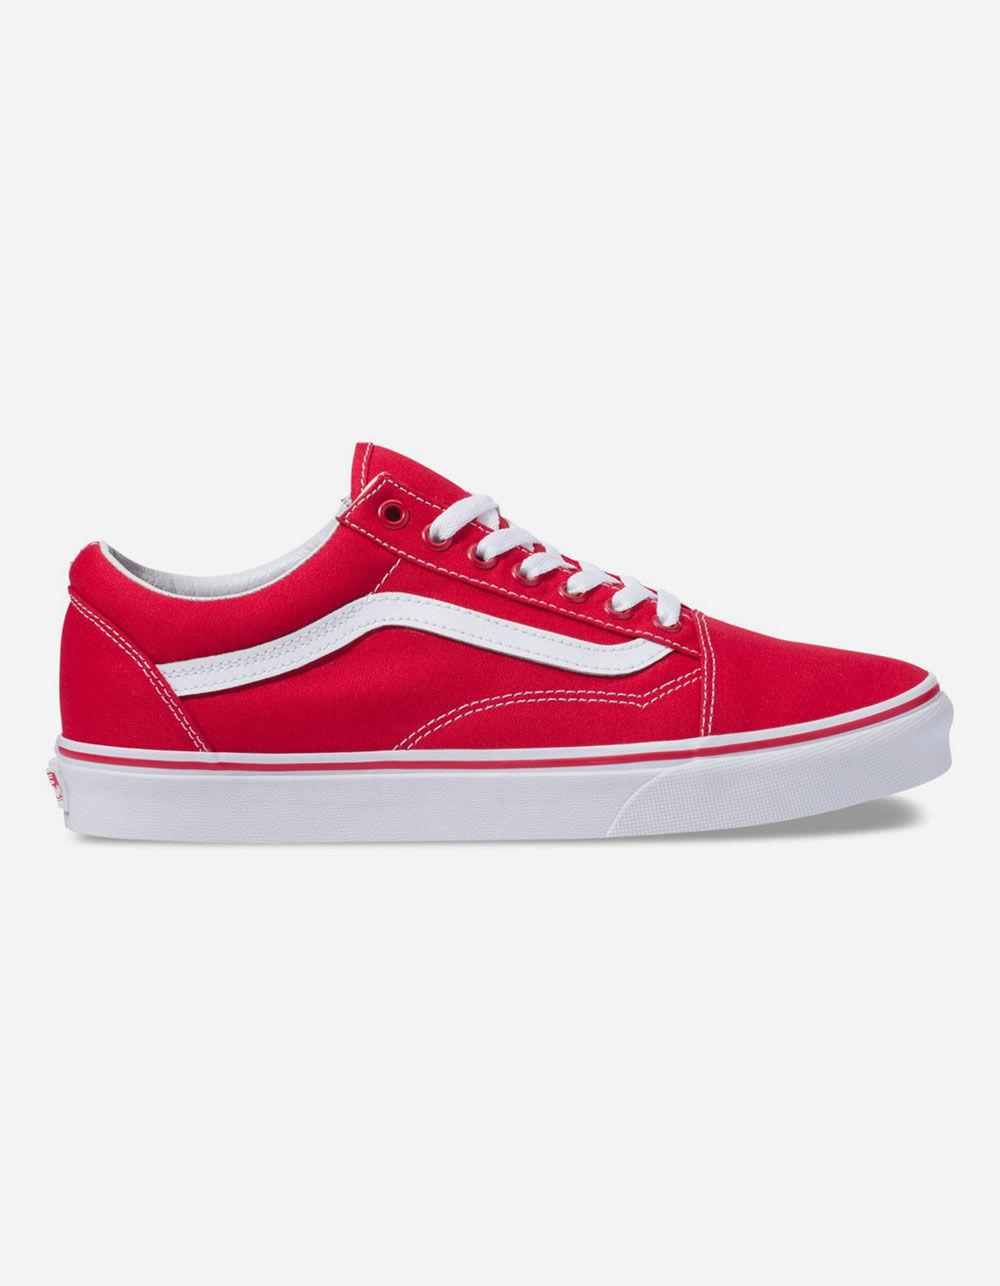 5a66aac6f175d0 Lyst - Vans Canvas Old Skool Formula One Shoes in Red